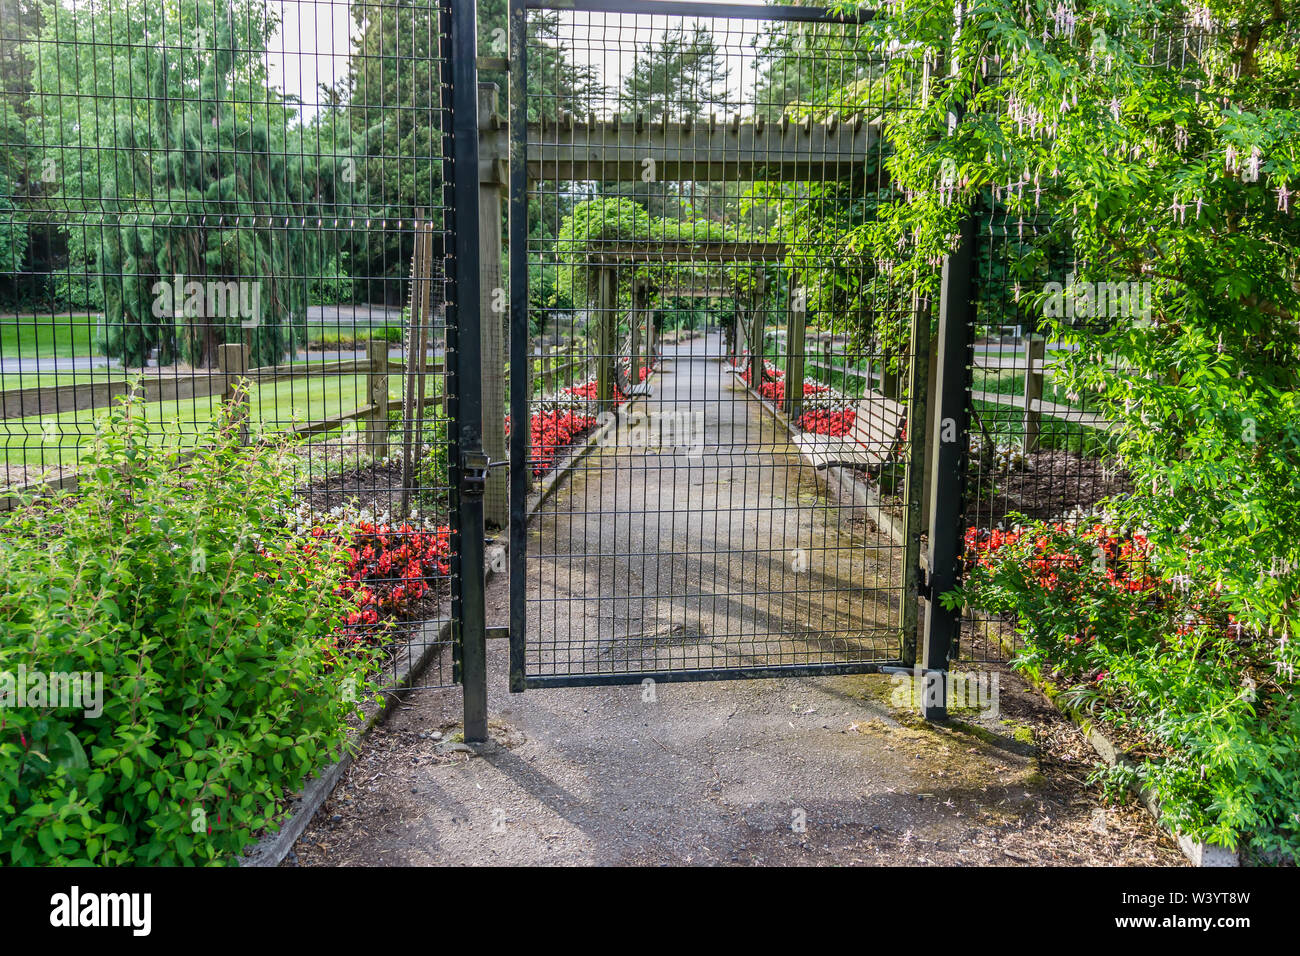 A view of a gate and walkway at the rose garden in Point Defiance Park in Tacoma, Washington. - Stock Image